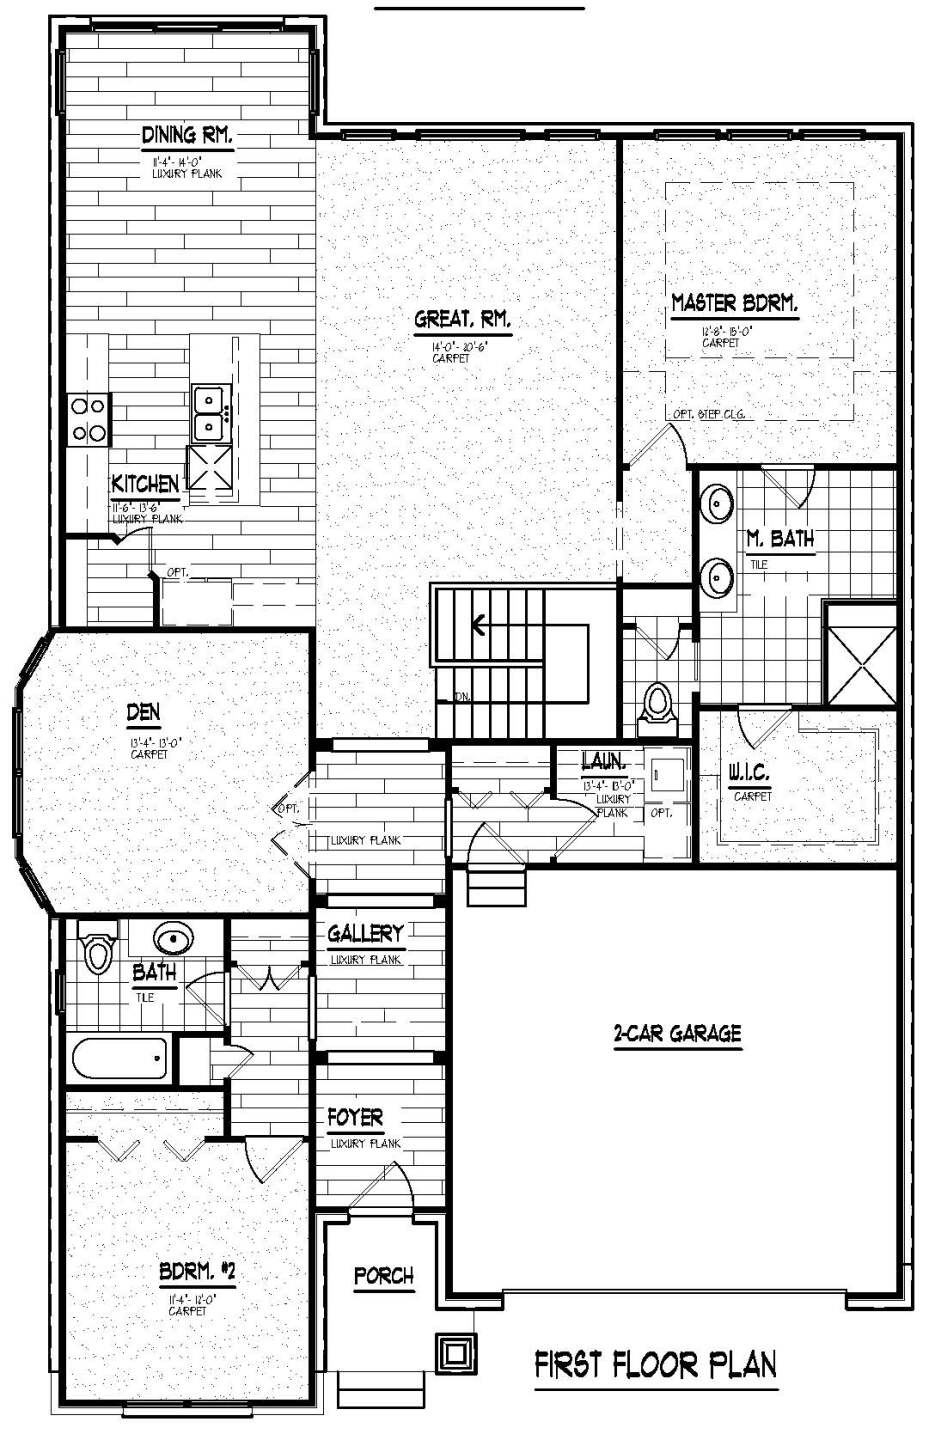 Raleigh Floor Plan.jpg